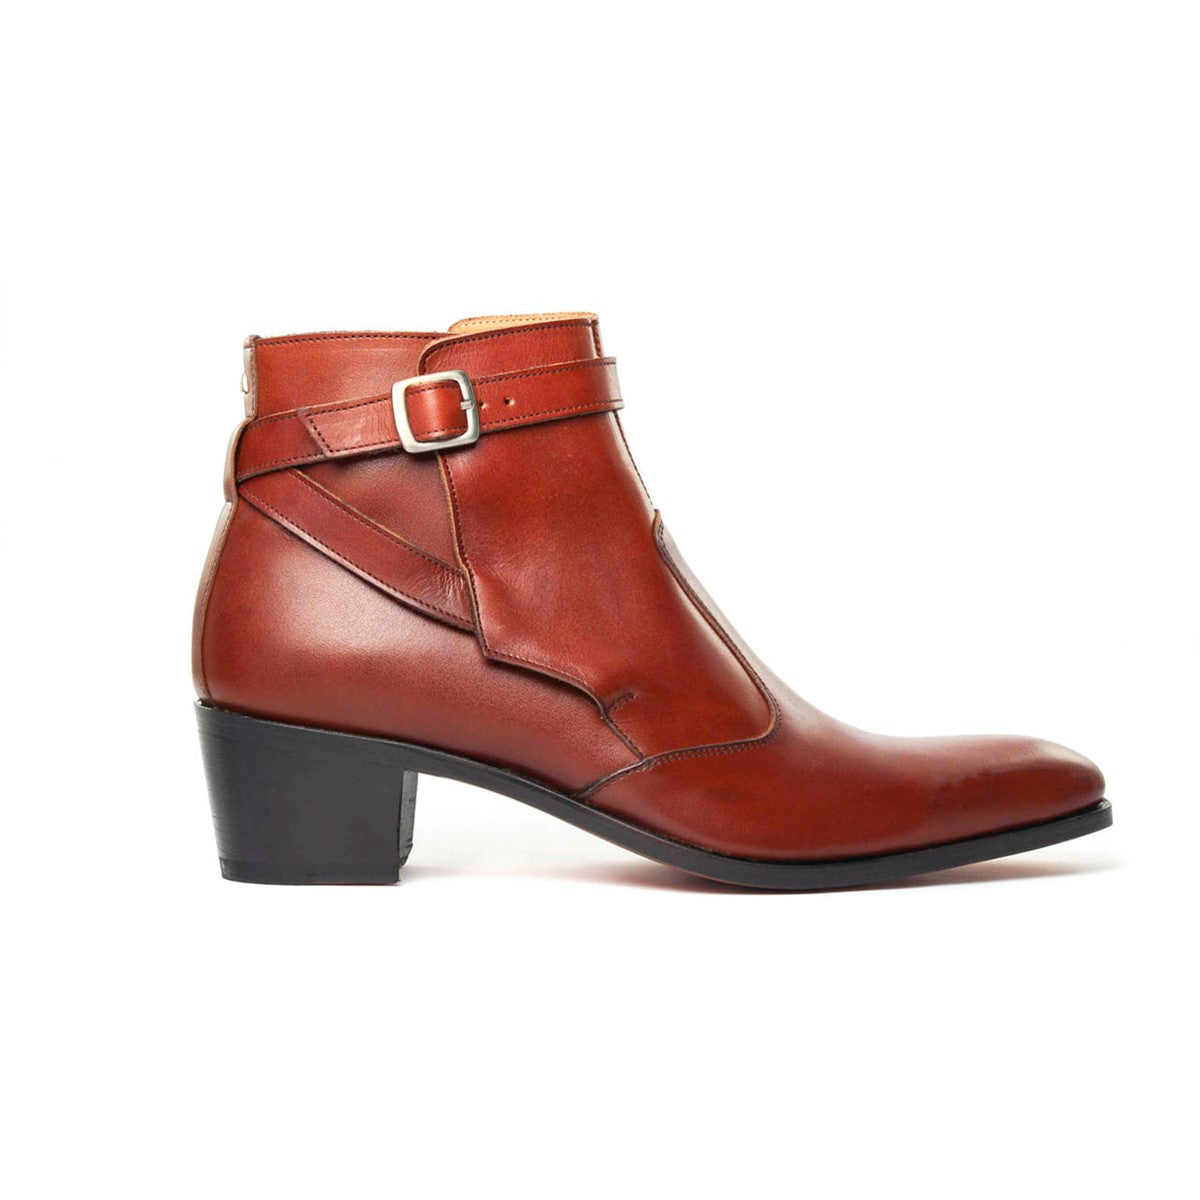 Boots Jodhpur in tabac calf leather Vincennes 5cm